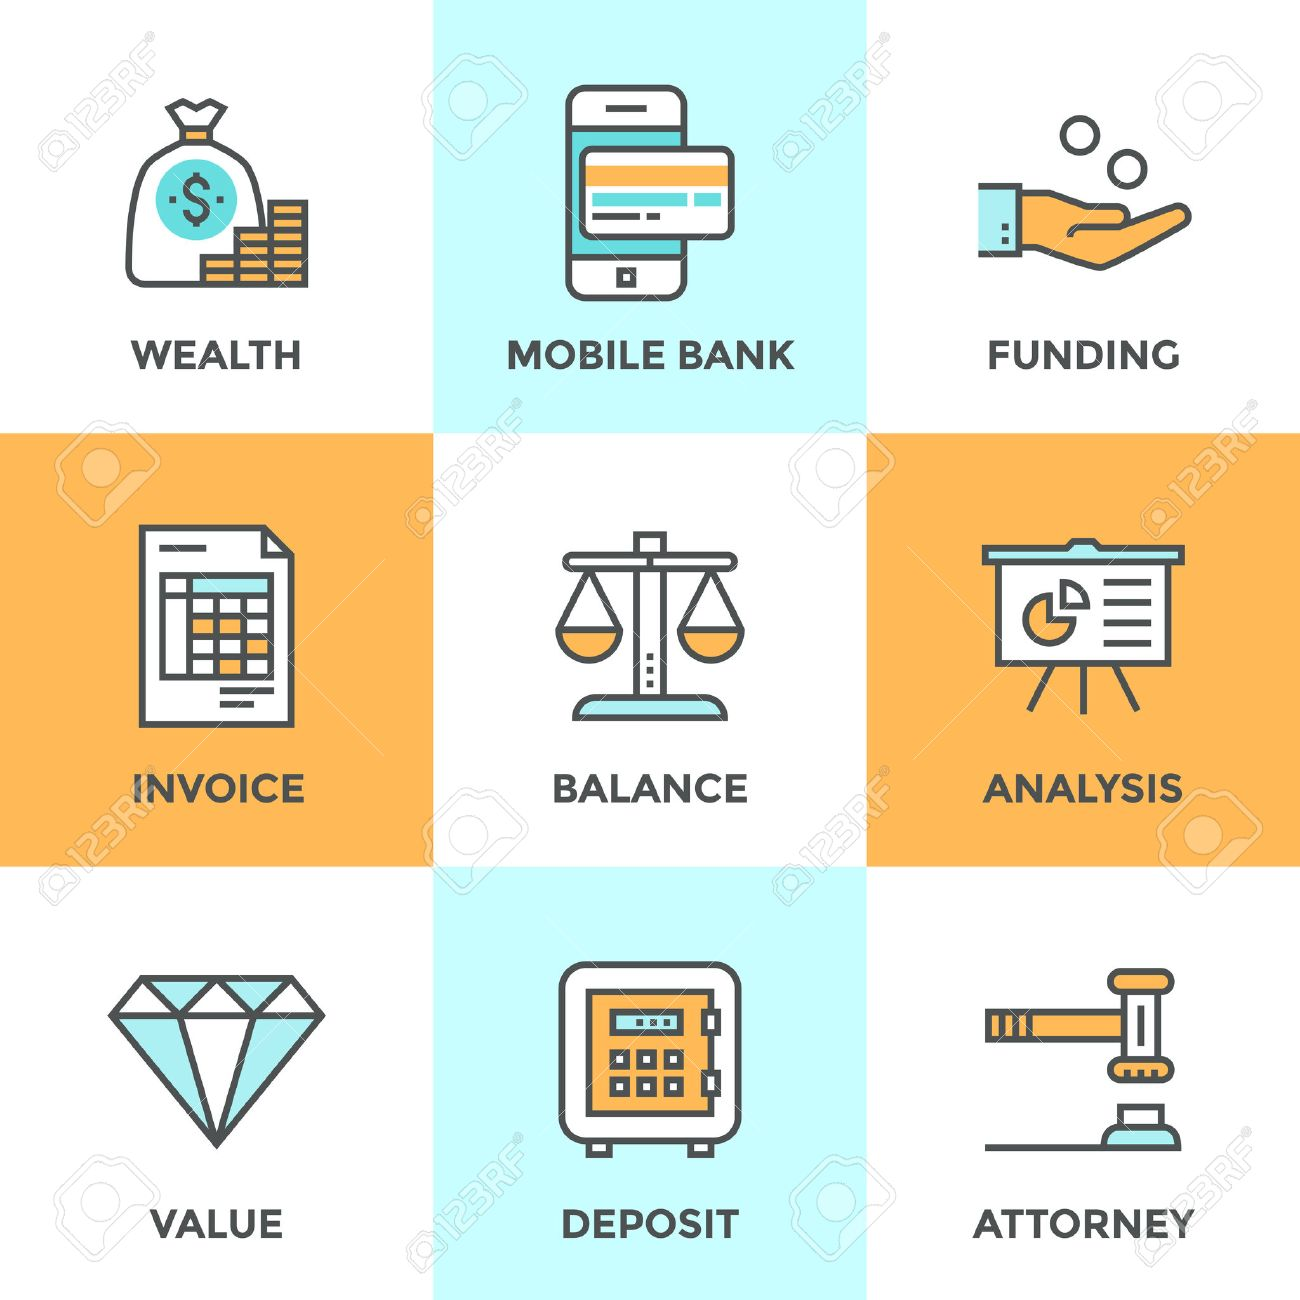 invoice design stock photos pictures royalty invoice invoice design line icons set flat design elements of financial investment for development business